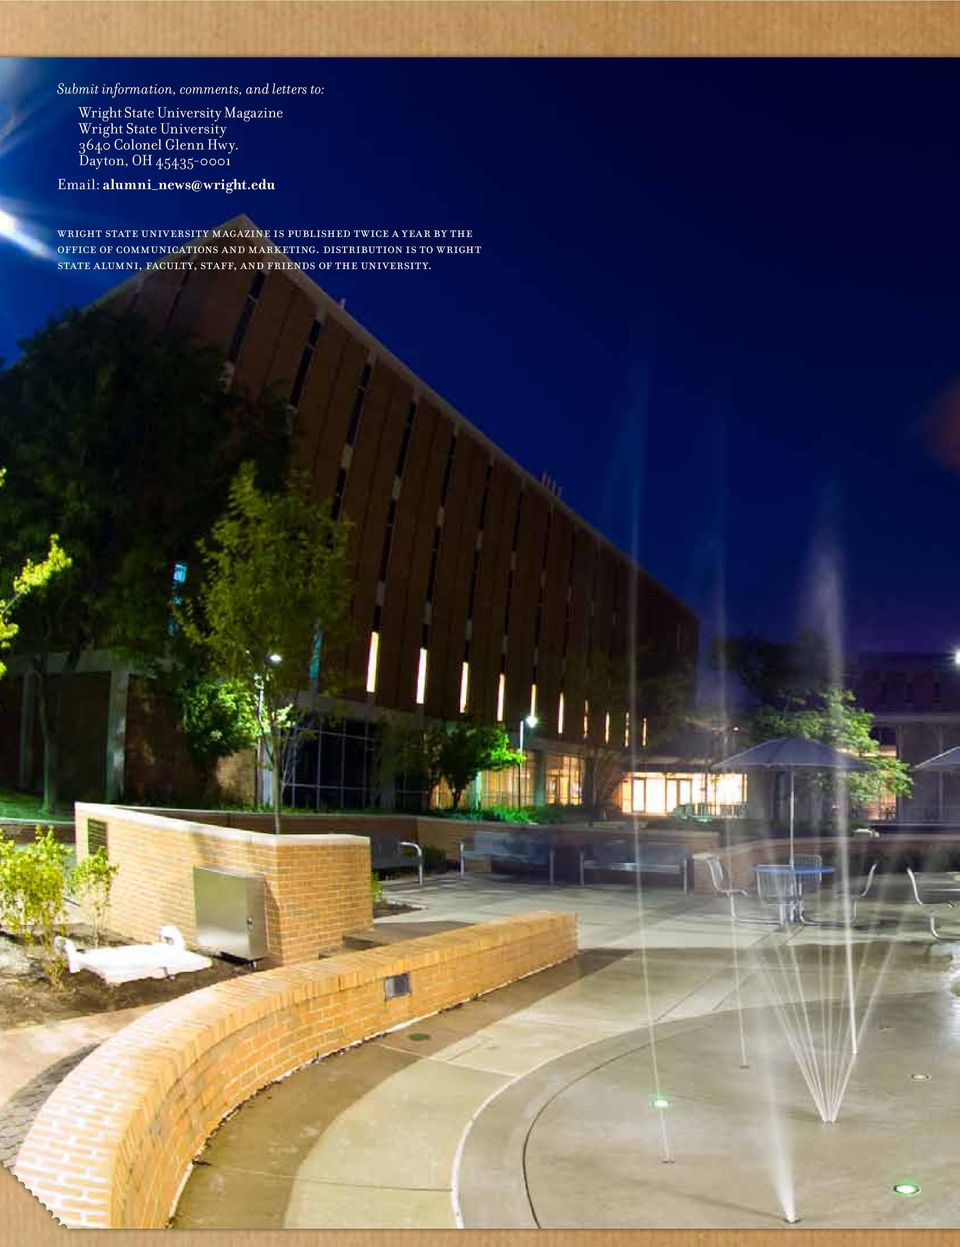 edu Wright State University Magazine is published twice a year by the Office of